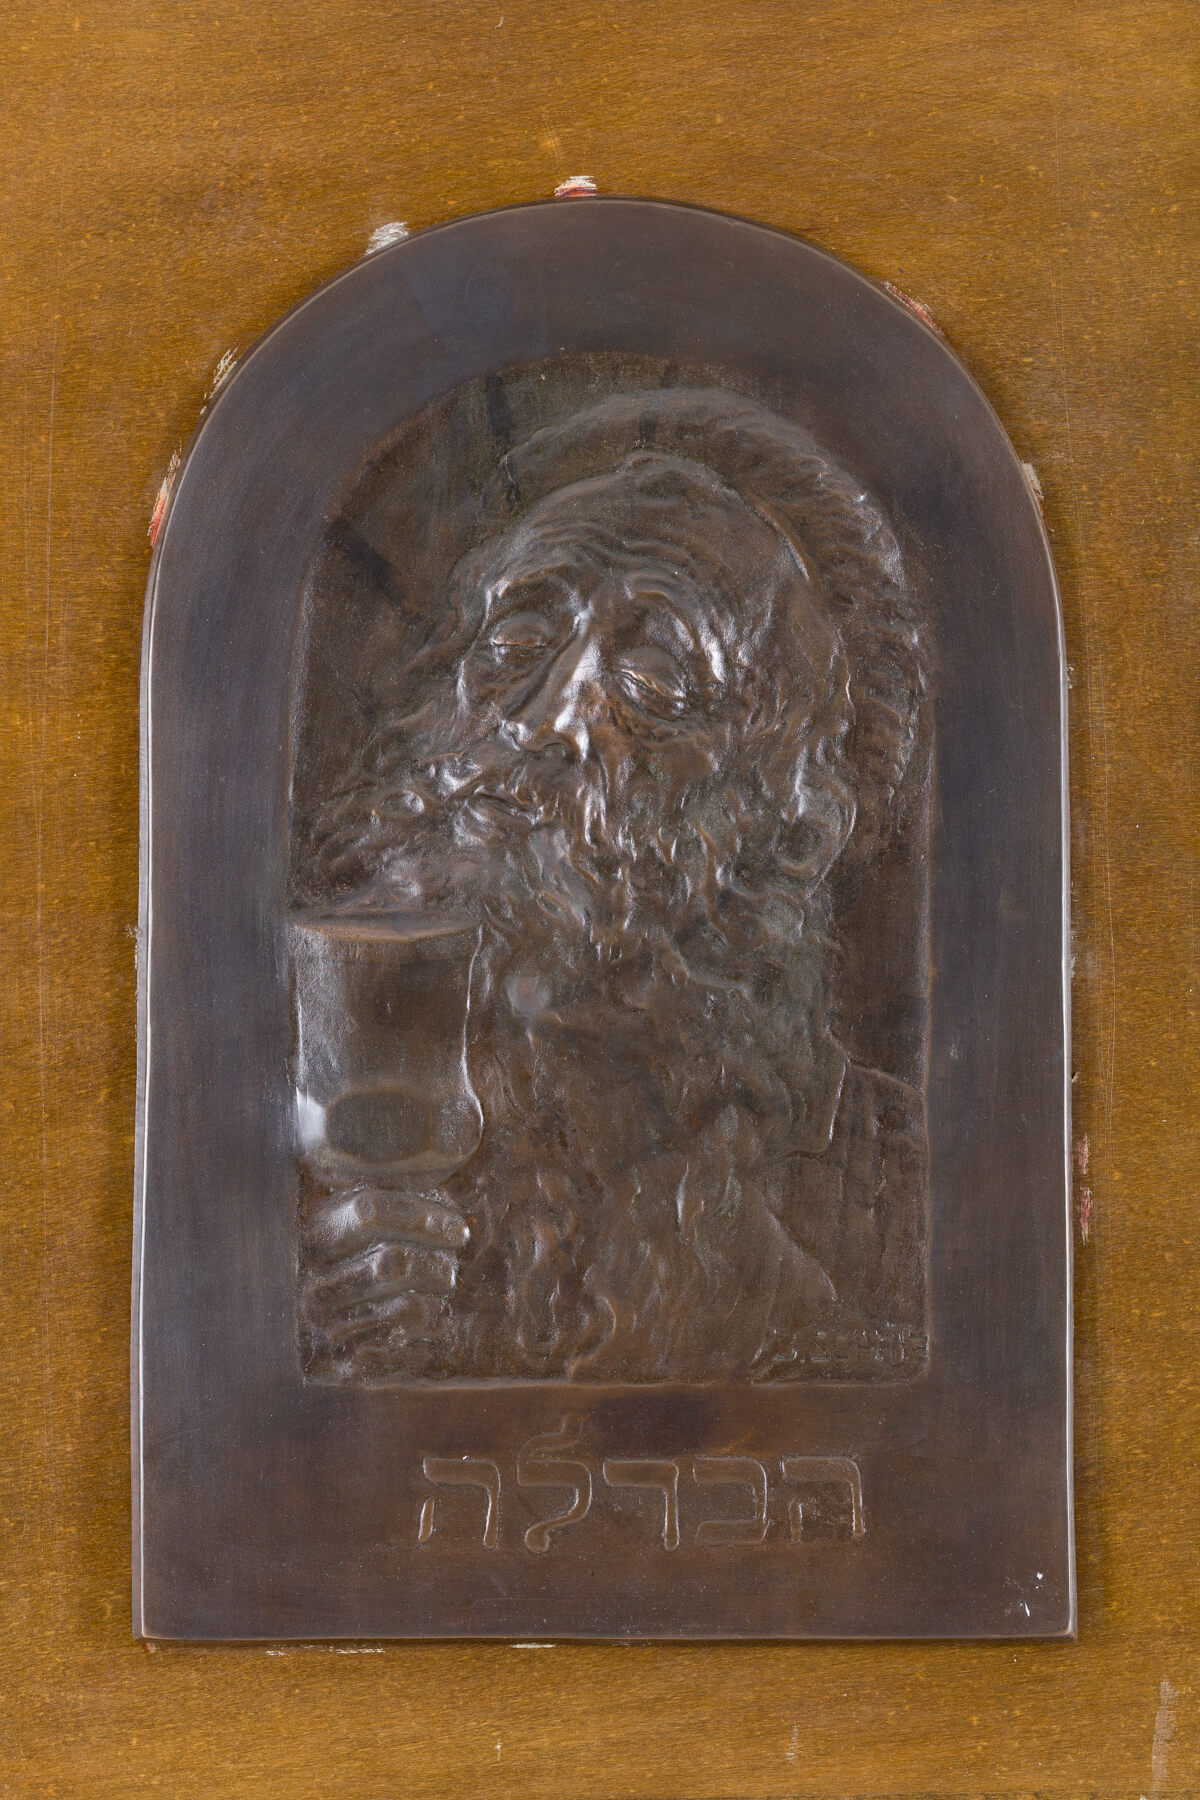 112. A Large Bronze Plaque by Boris Schatz